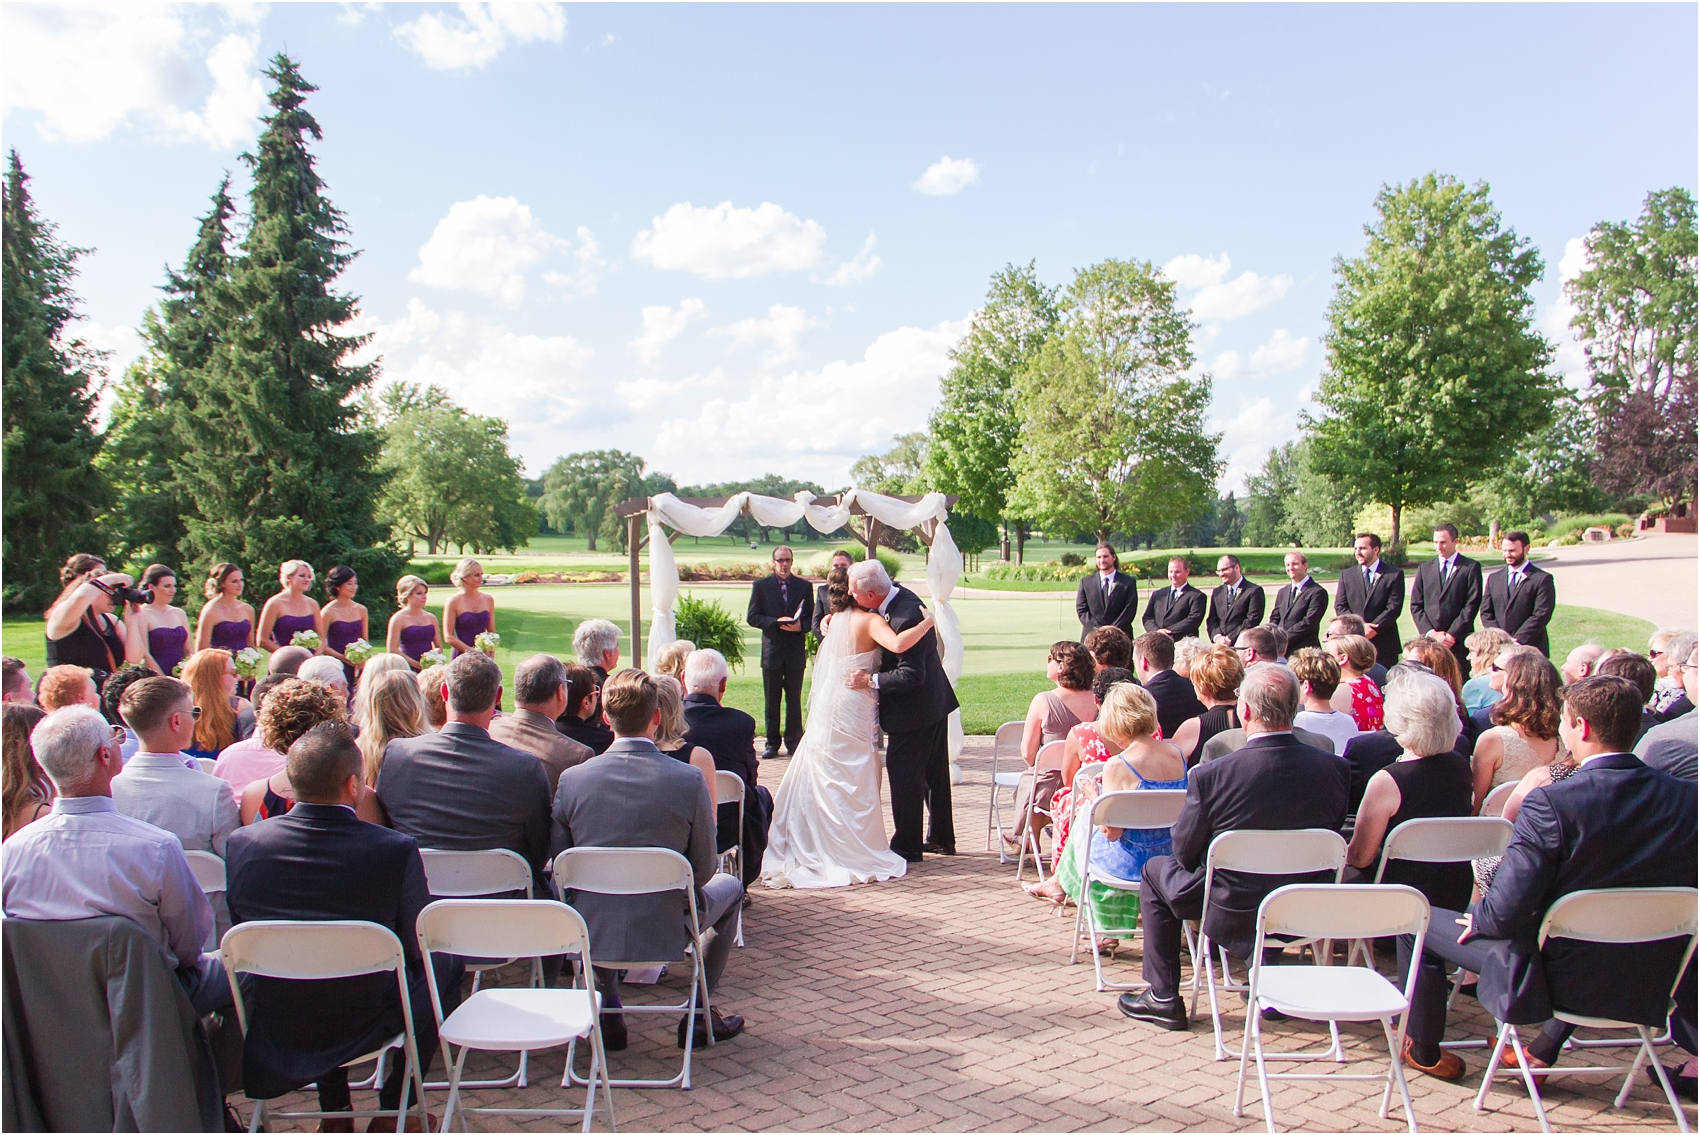 classic-wedding-photos-at-great-oaks-country-club-in-rochester-hills-mi-by-courtney-carolyn-photography_0071.jpg